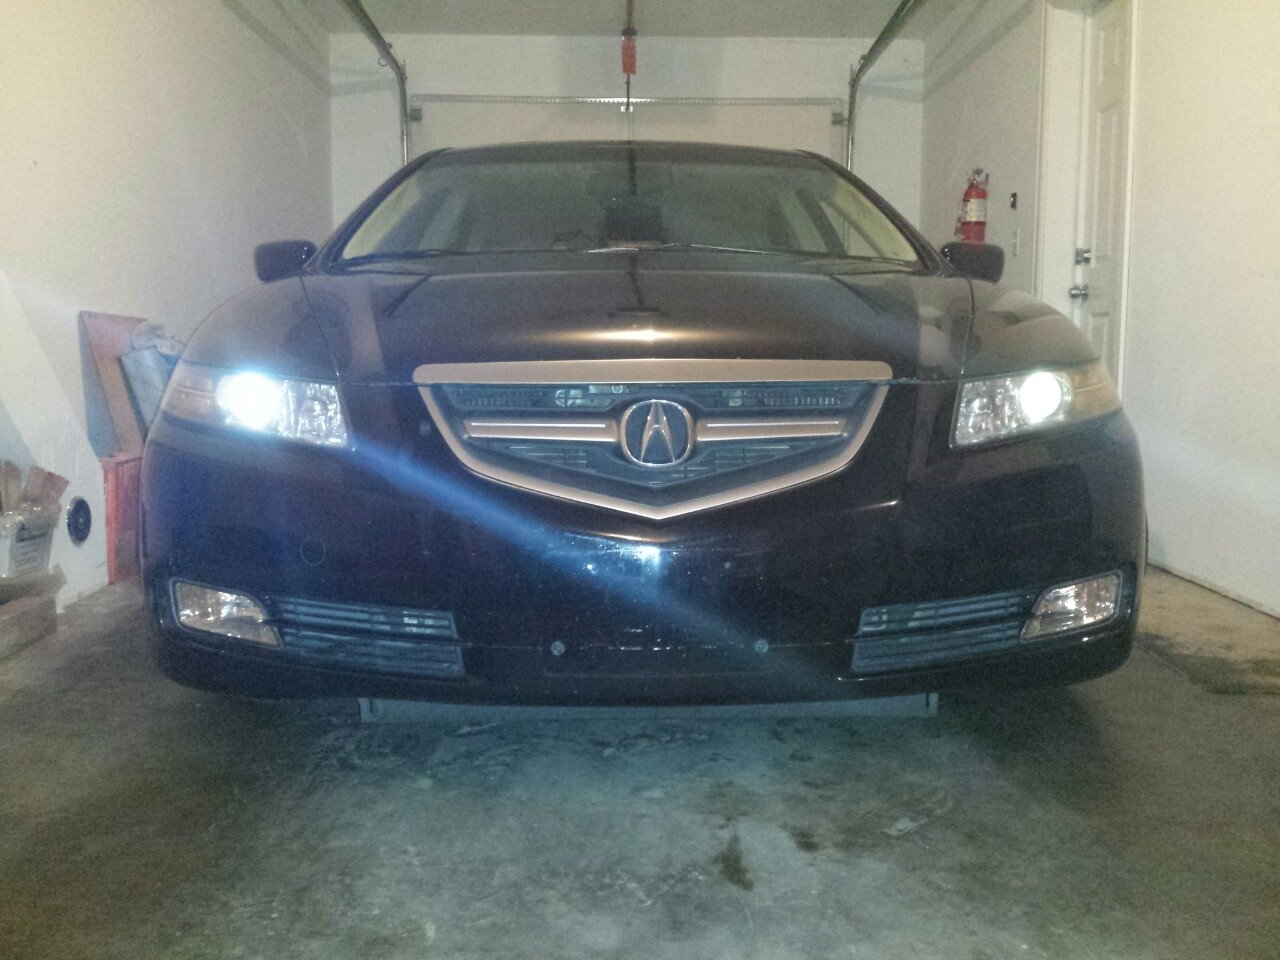 Diy Detailed Guide To Installing Inspire Fog Lights Acurazine 2006 Acura Tl Headlamp Wiring Harness Here Are Some Pics Thanks Again